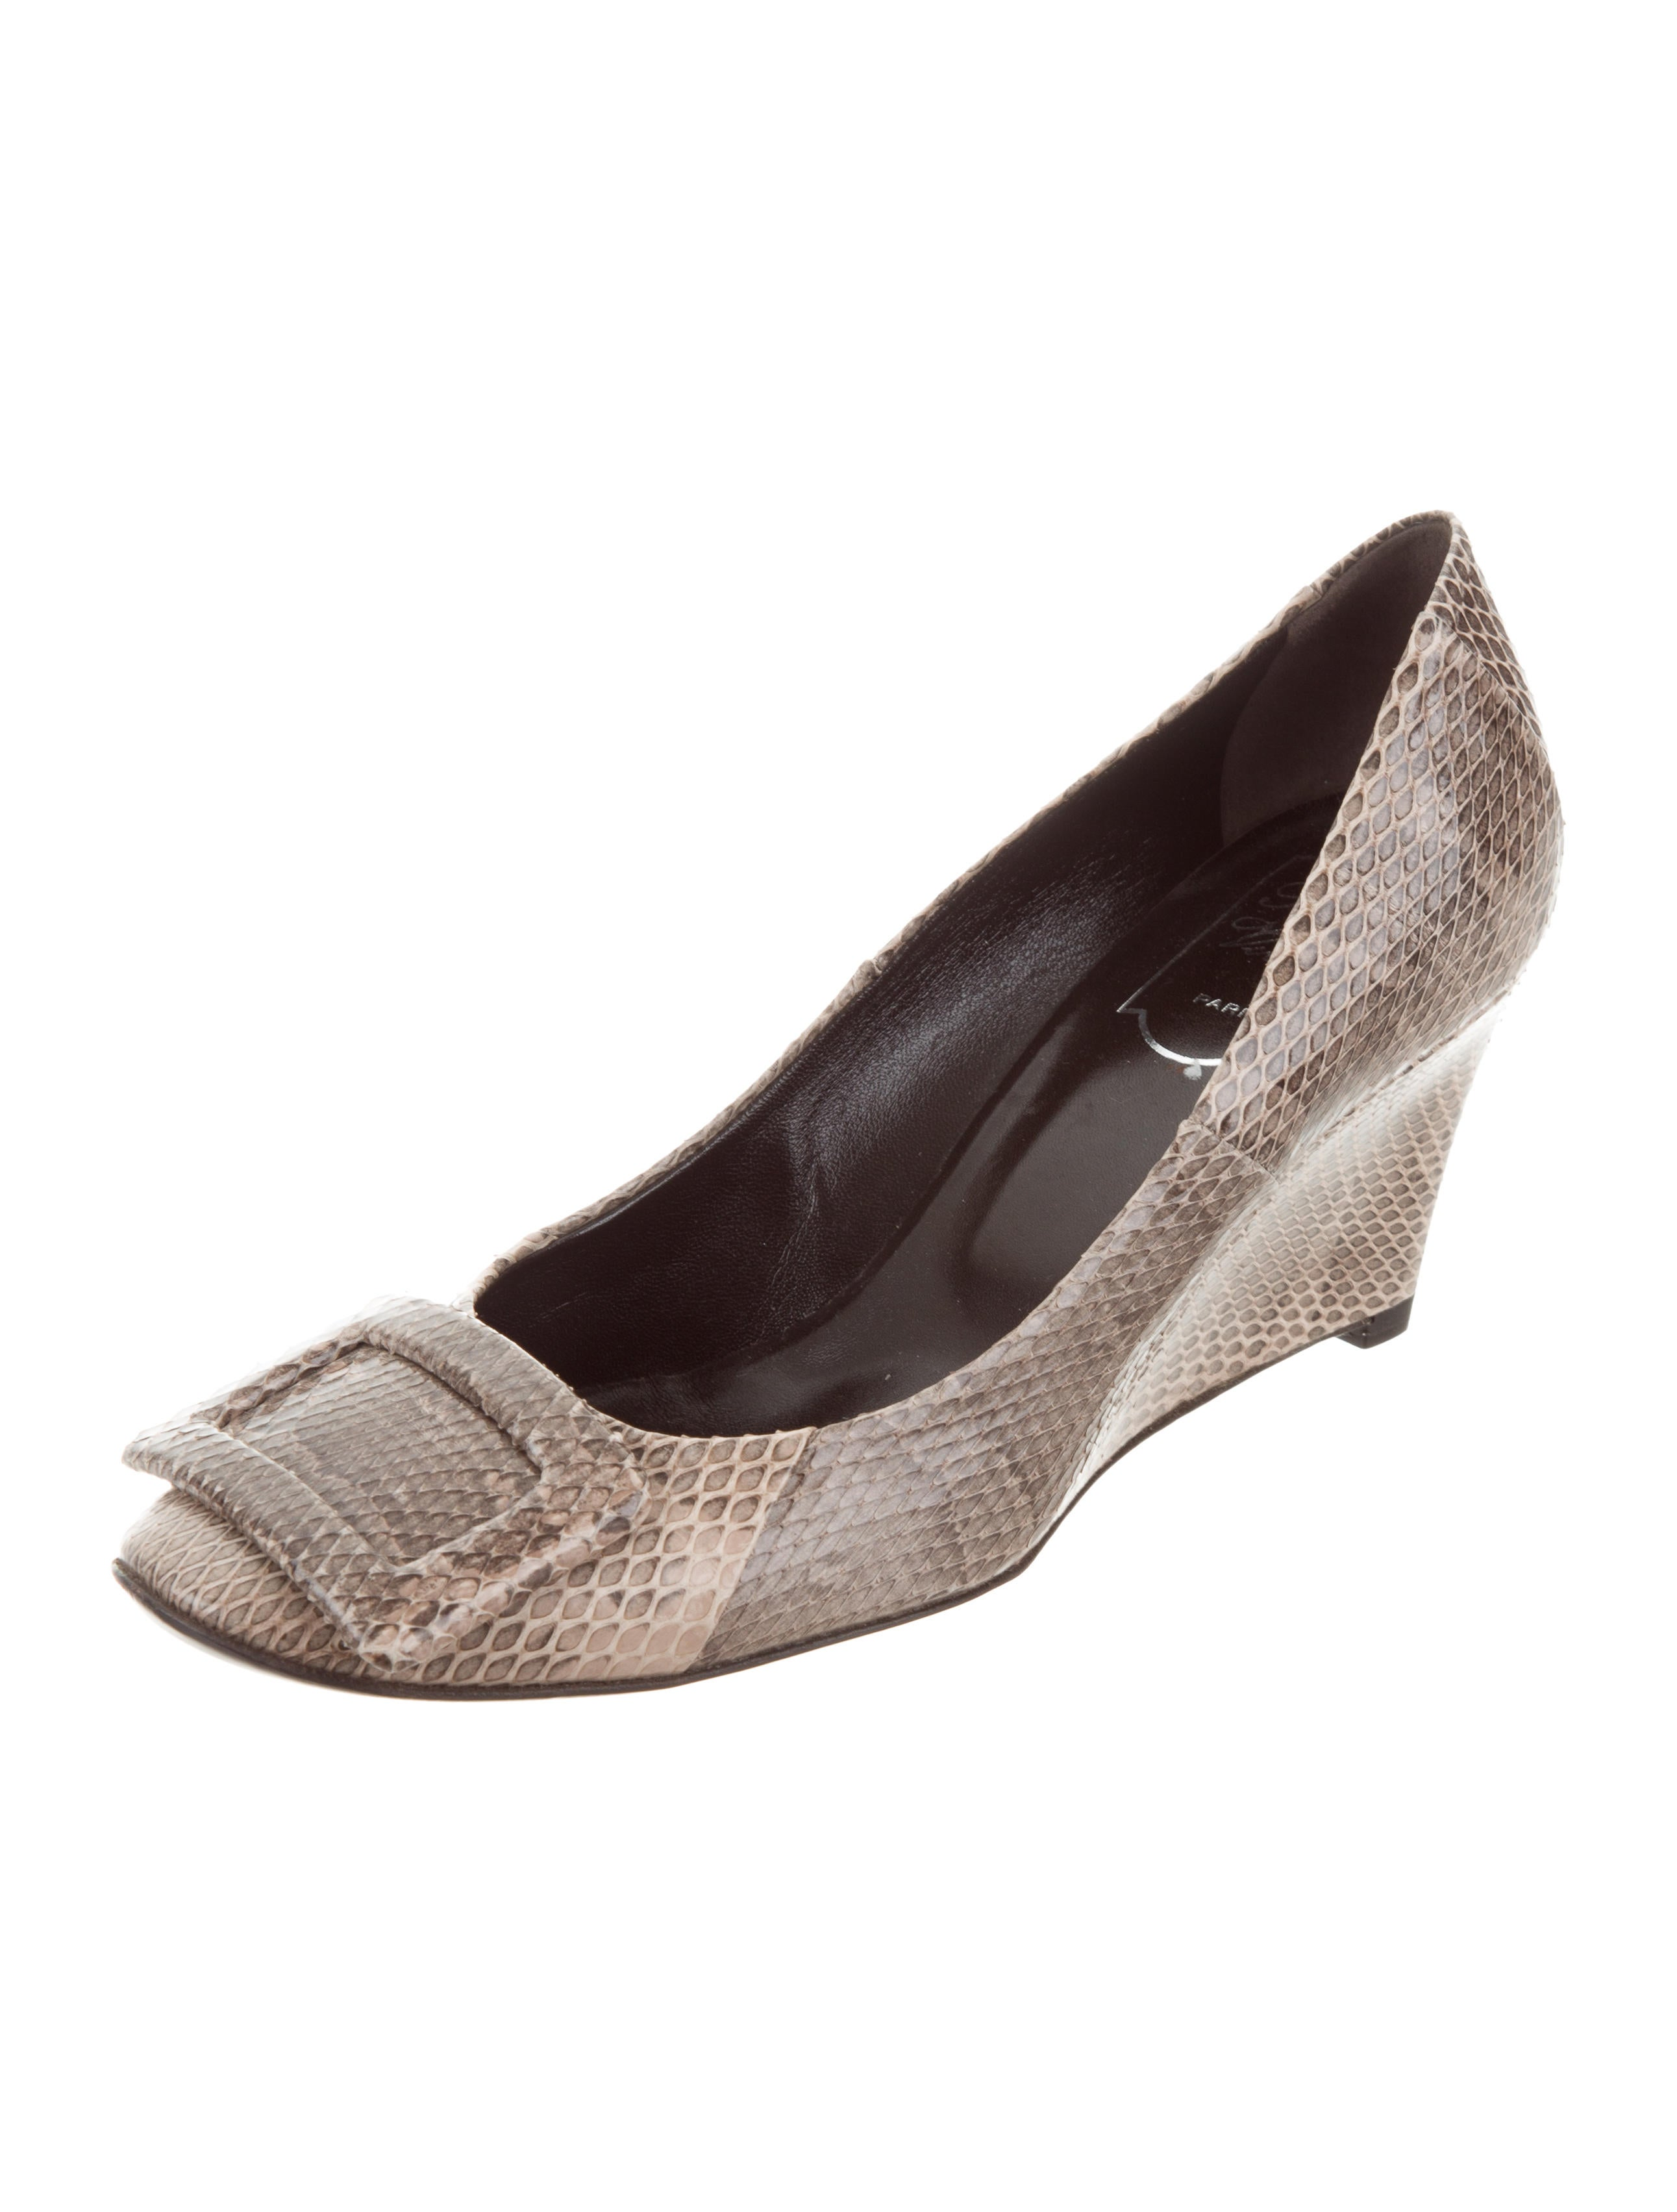 geniue stockist cheap price find great Roger Vivier Snakeskin Round-Toe Wedges fashion Style for sale O5jgf